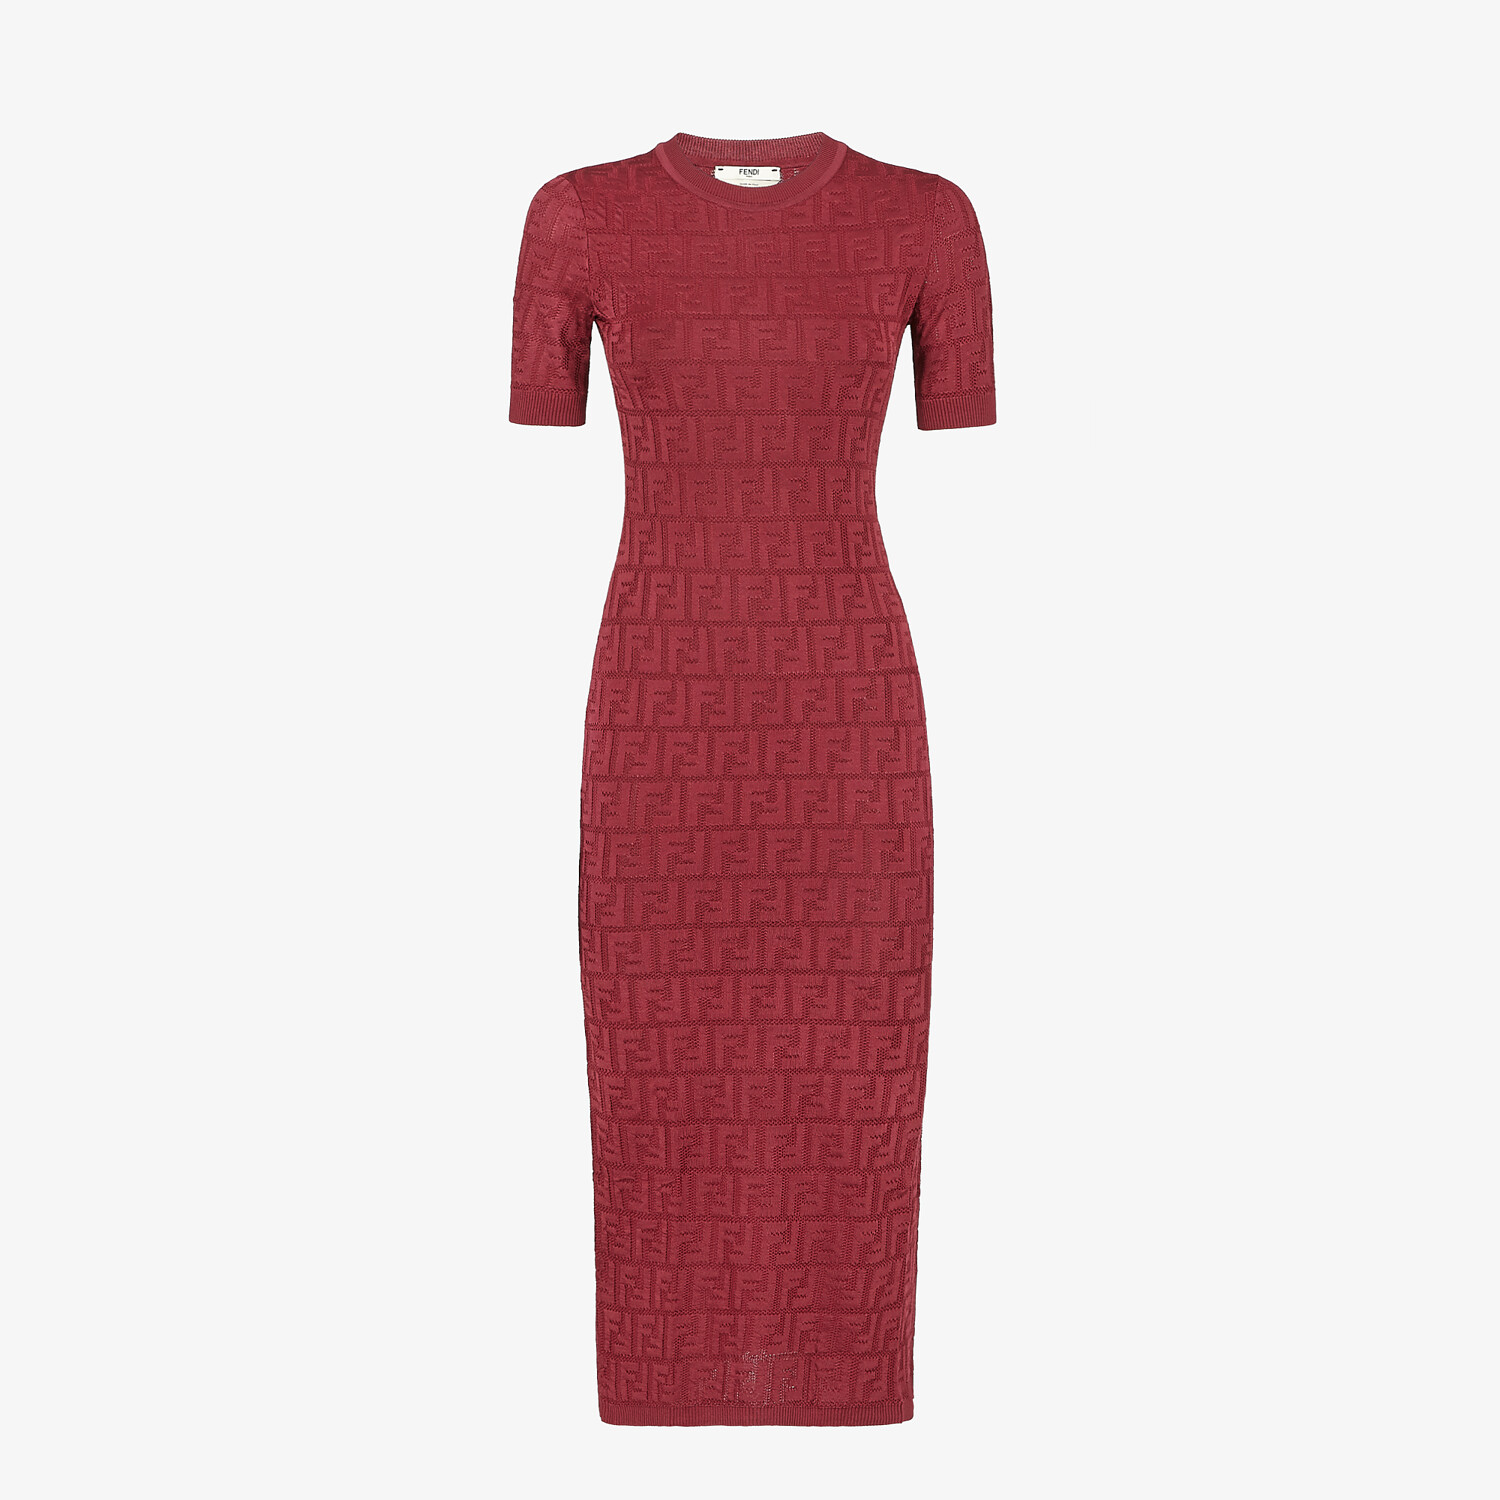 FENDI DRESS - Burgundy viscose and cotton dress - view 1 detail